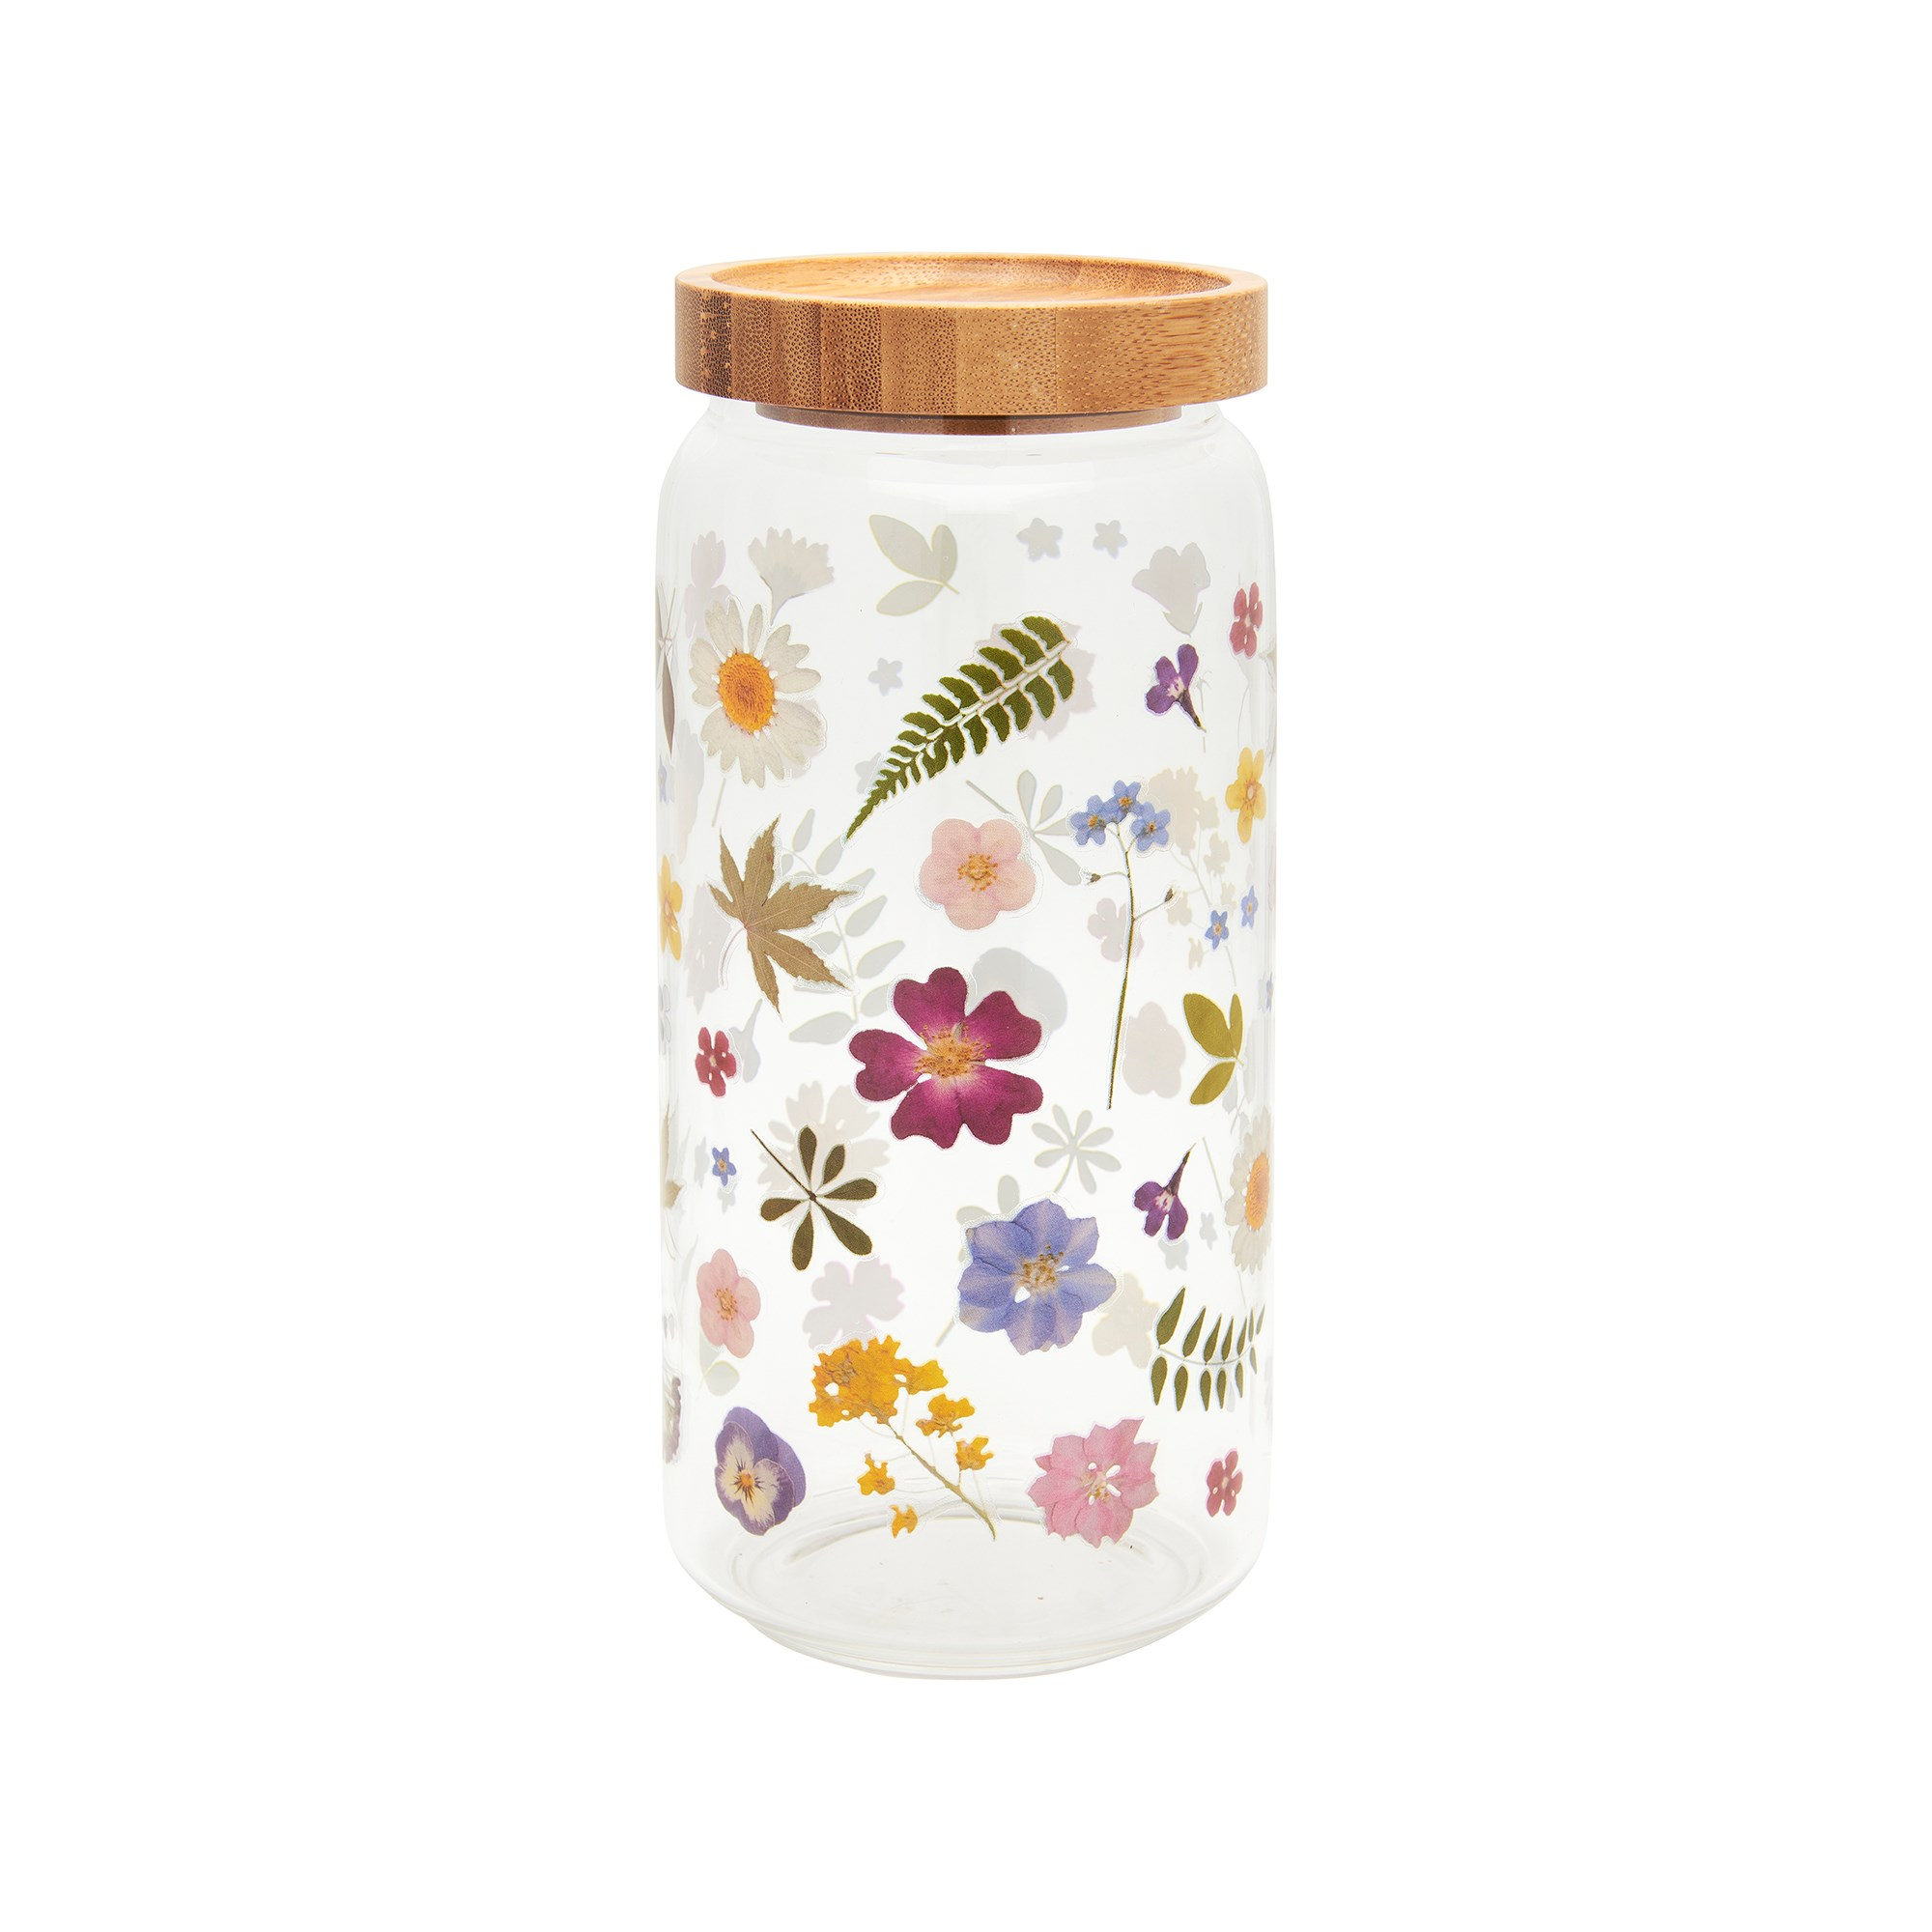 Pressed flowers glass storage jar large. Sass and belle